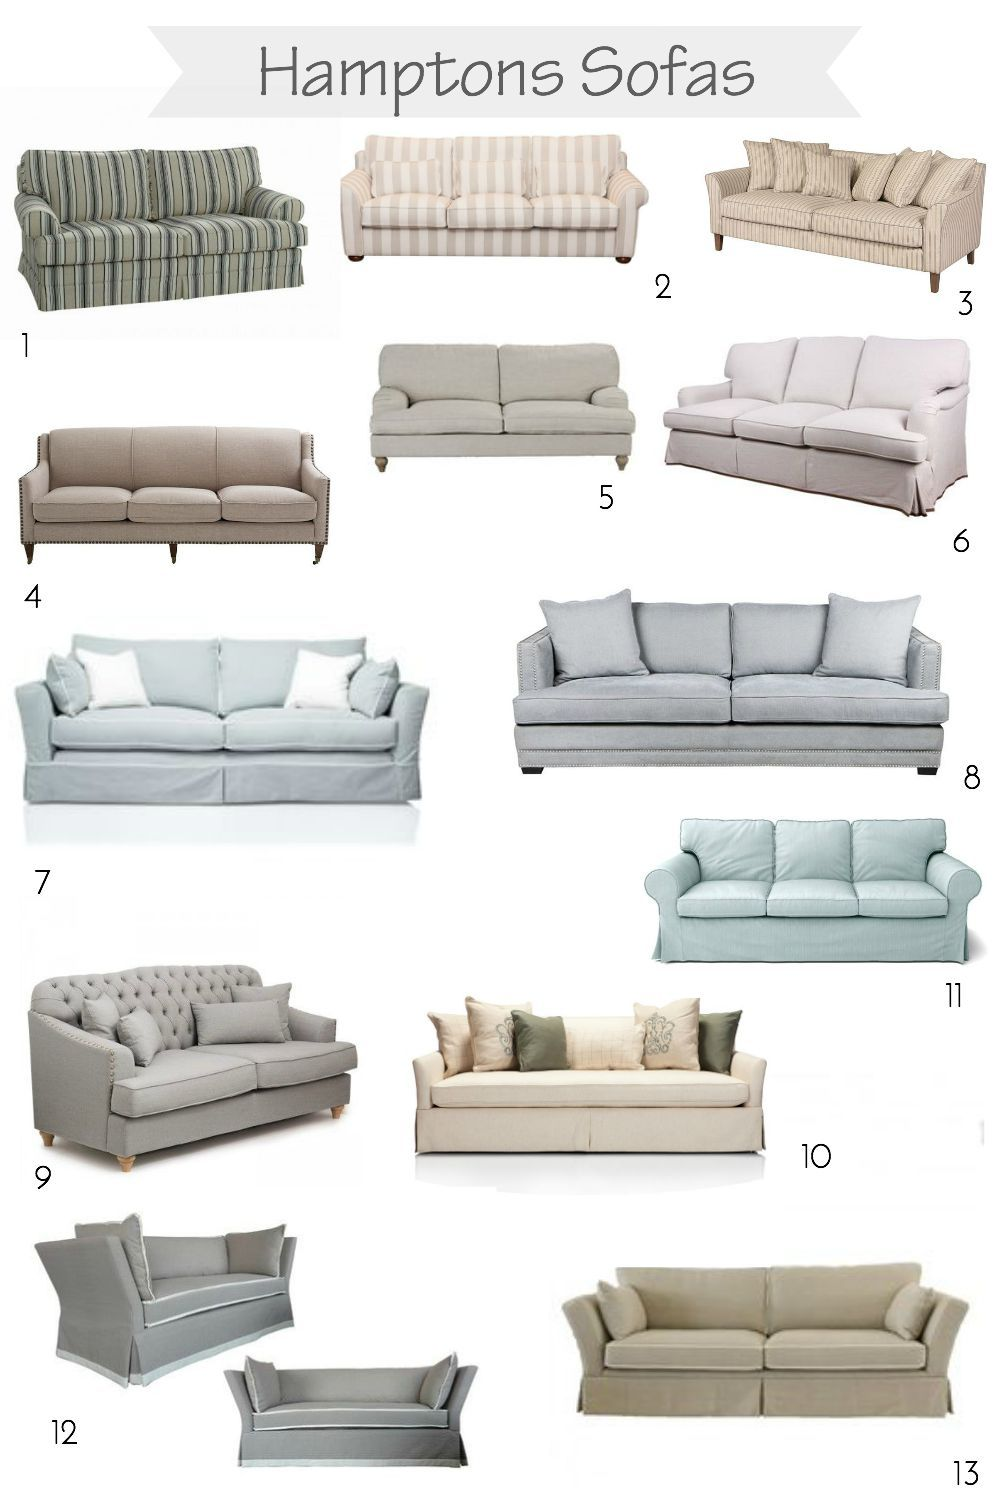 Searching For A Hamptons Sofa Little